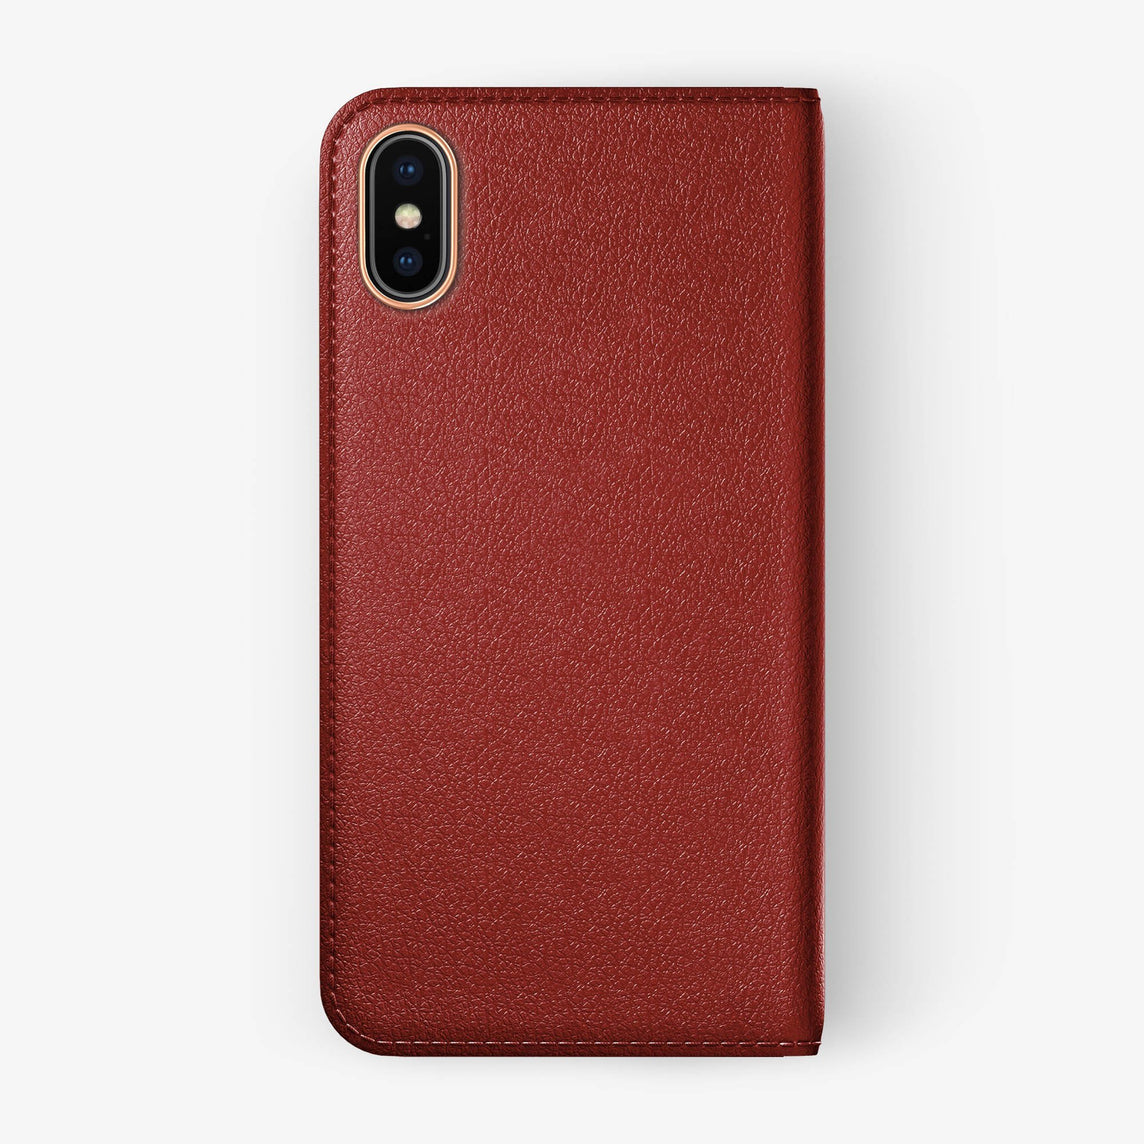 Red Calfskin iPhone Folio Case for iPhone X finishing rose gold - Hadoro Luxury Cases - img1